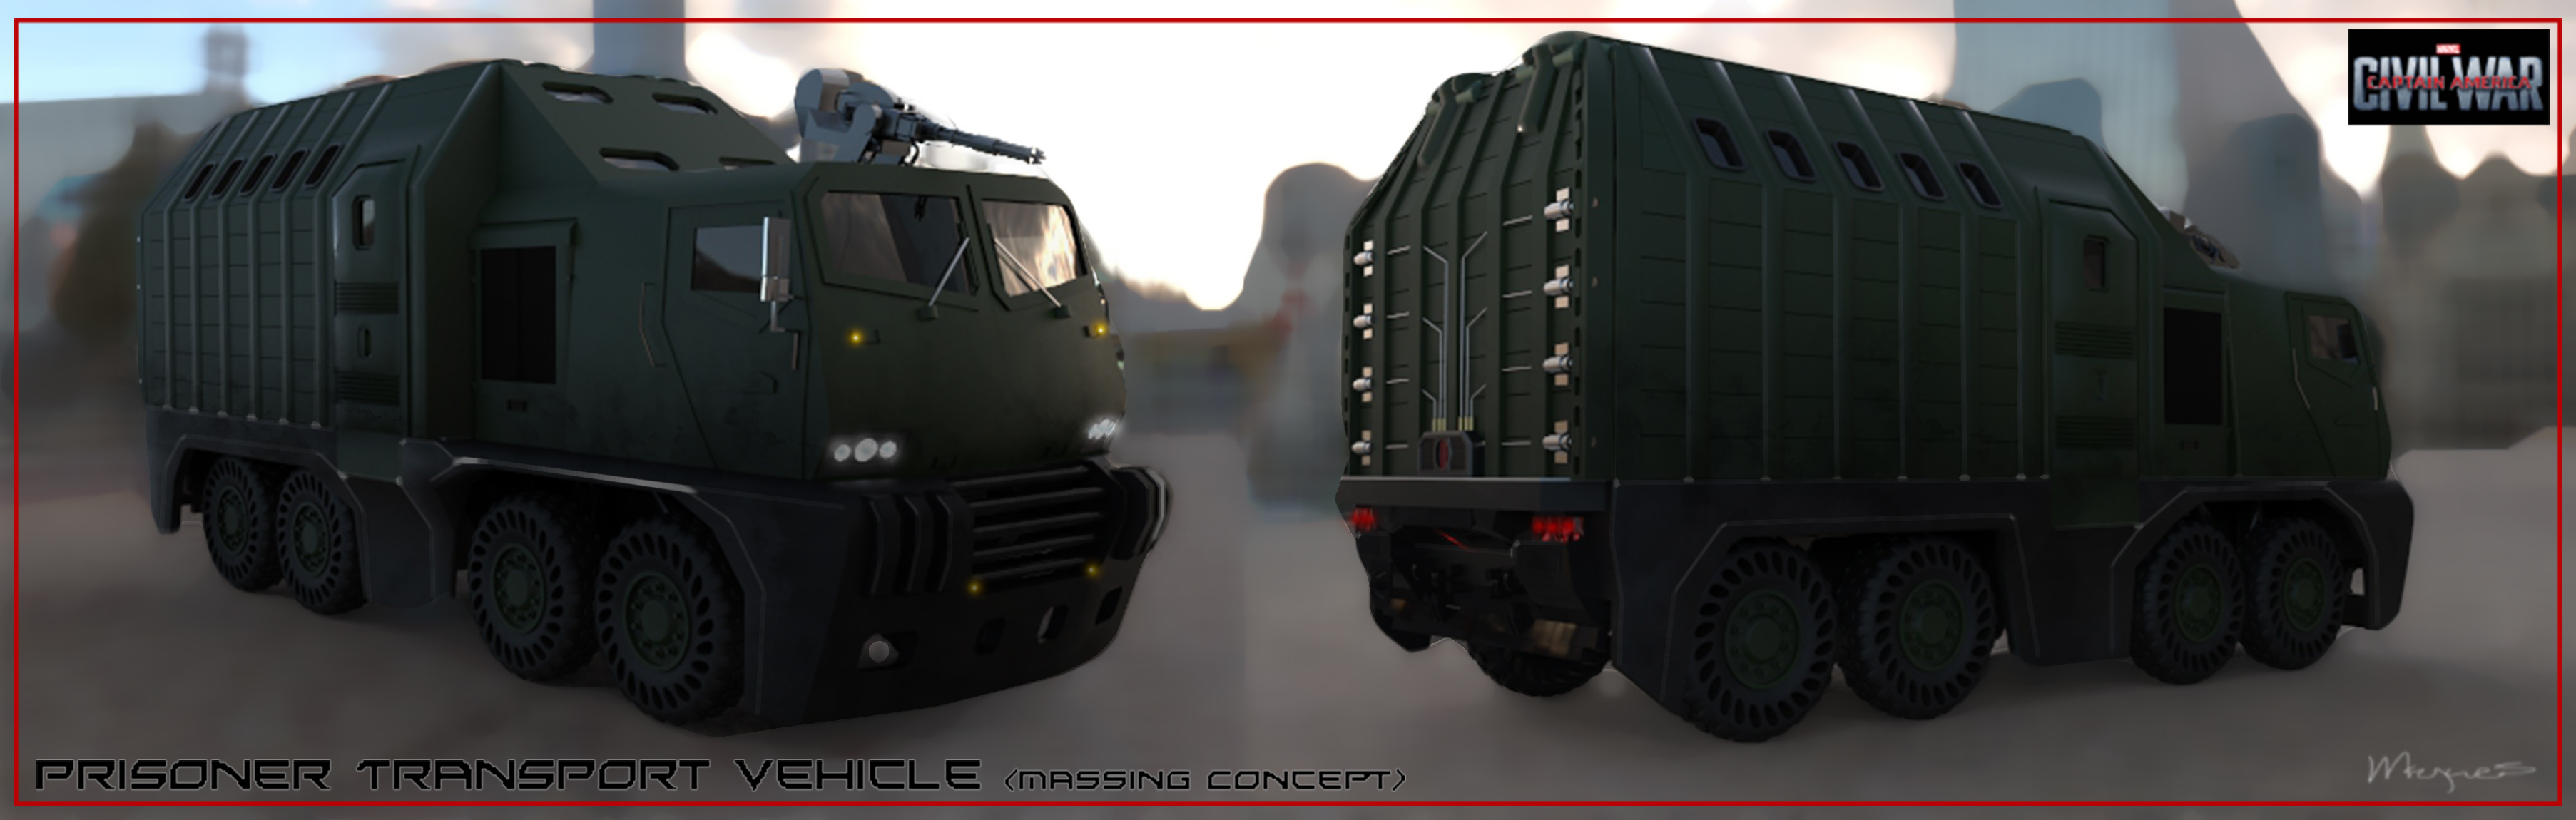 Winter Soldier Transport Concept